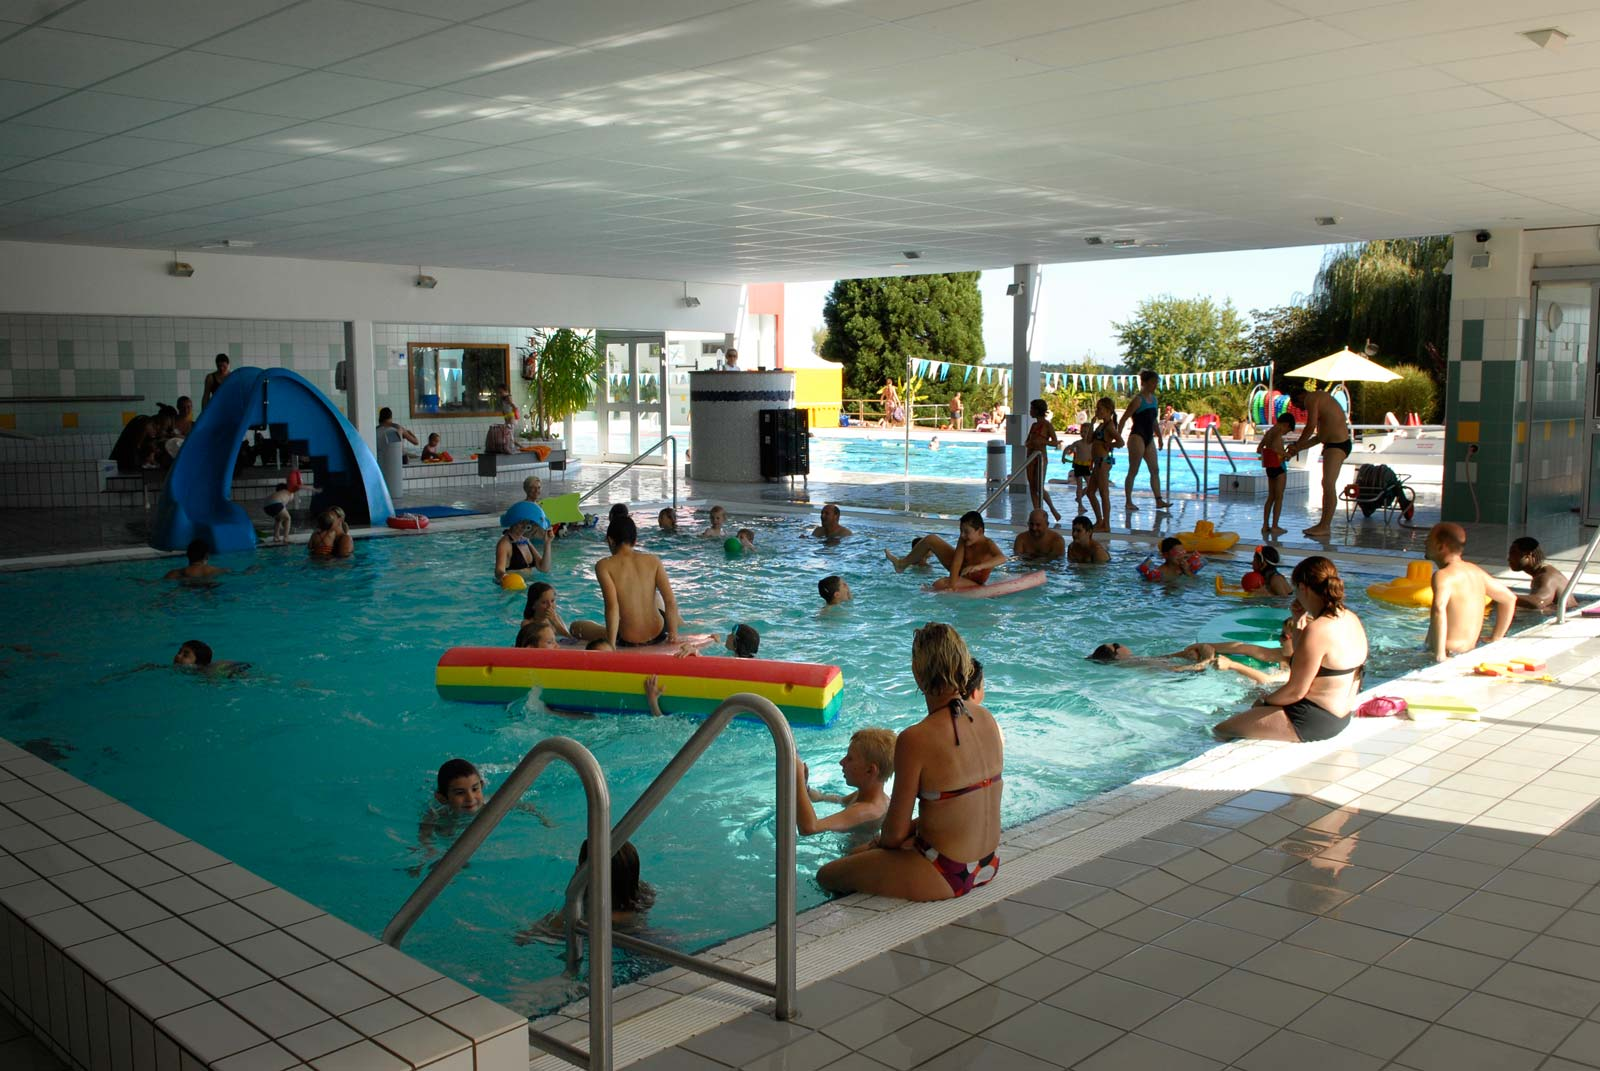 Piscine t hiver les aqualies for Piscine munster tarif